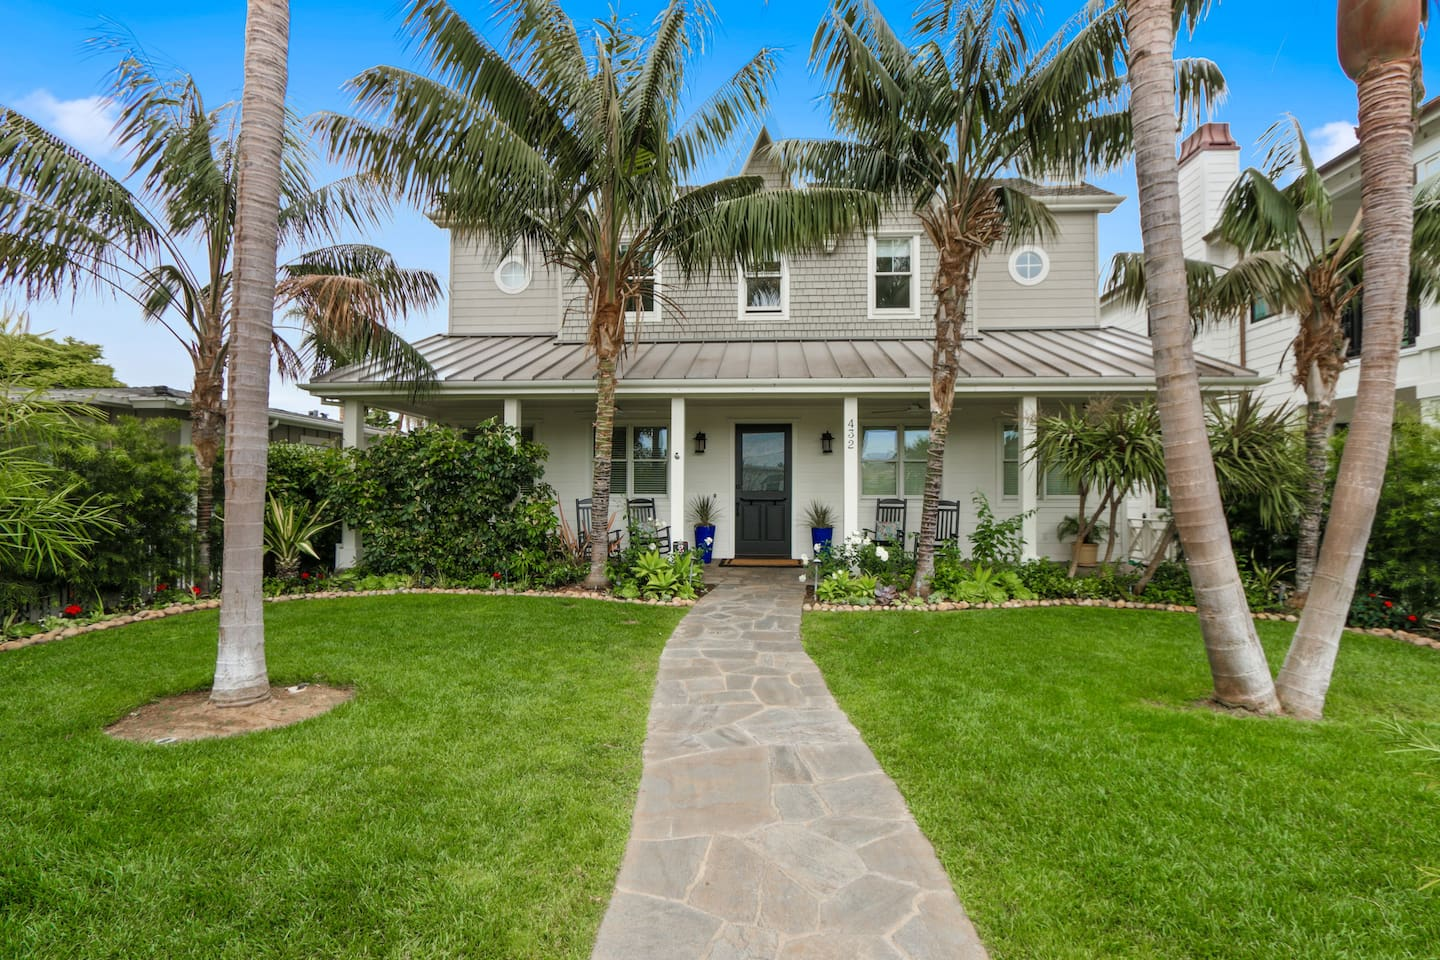 Beautiful Custom Home Located in Quiet and Prime Upscale Neighborhood. Ocean, Bay and Peninsula close. Fine Dining and Shopping minutes away.